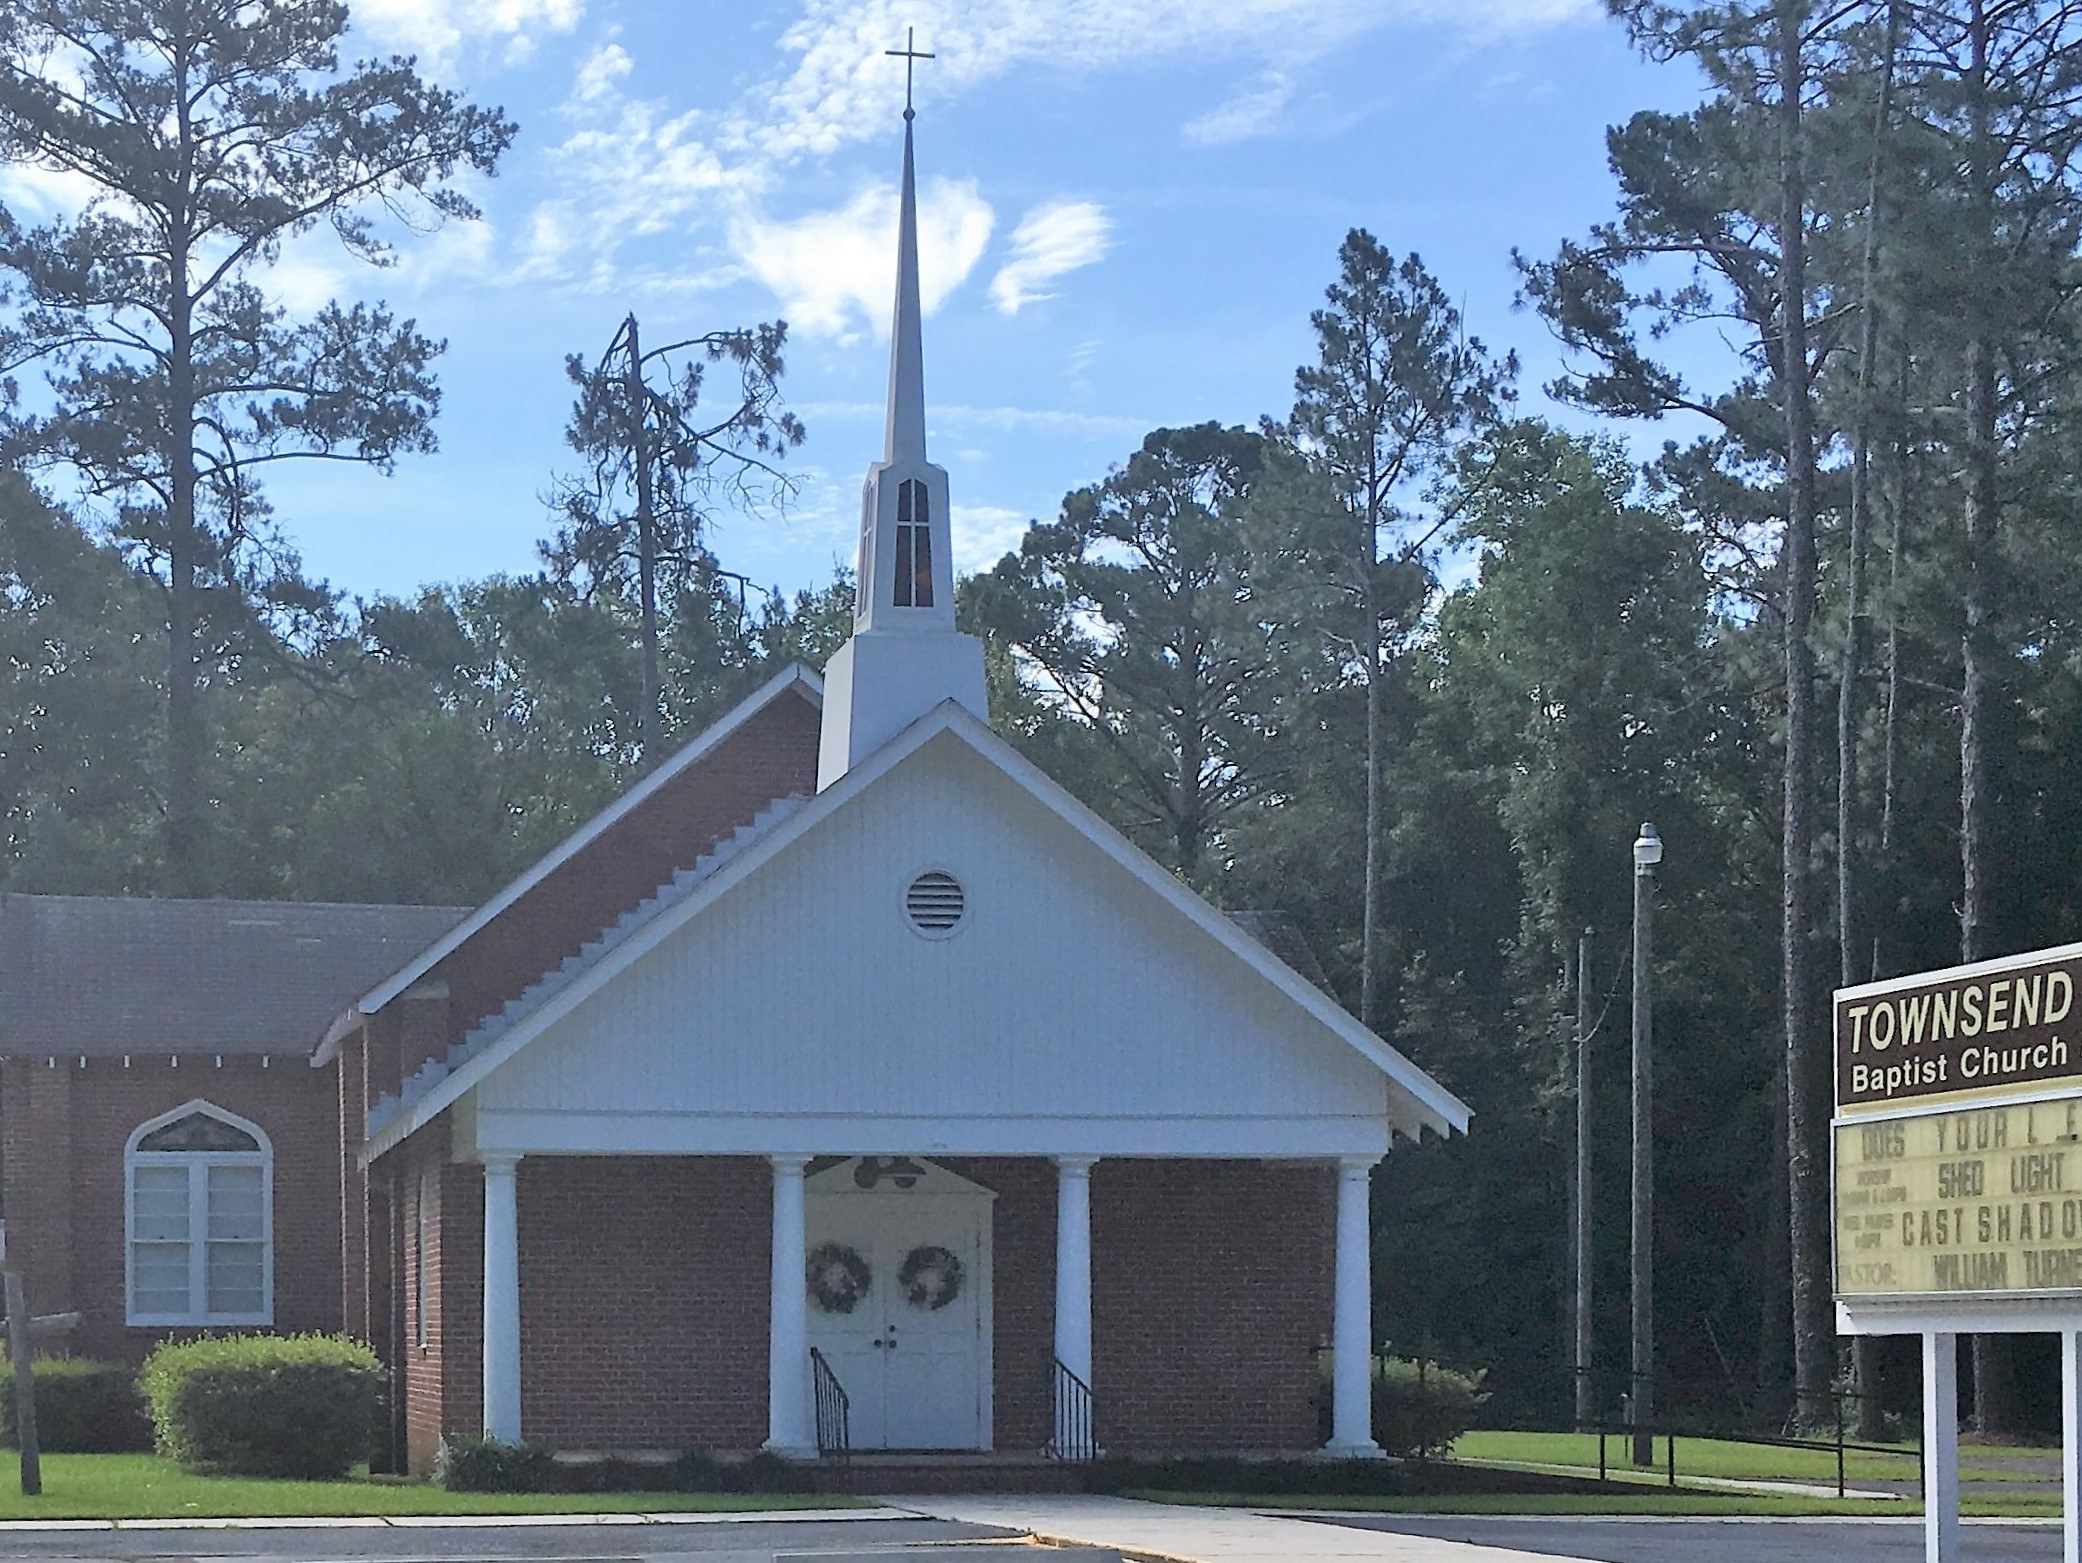 Townsend Baptist Church